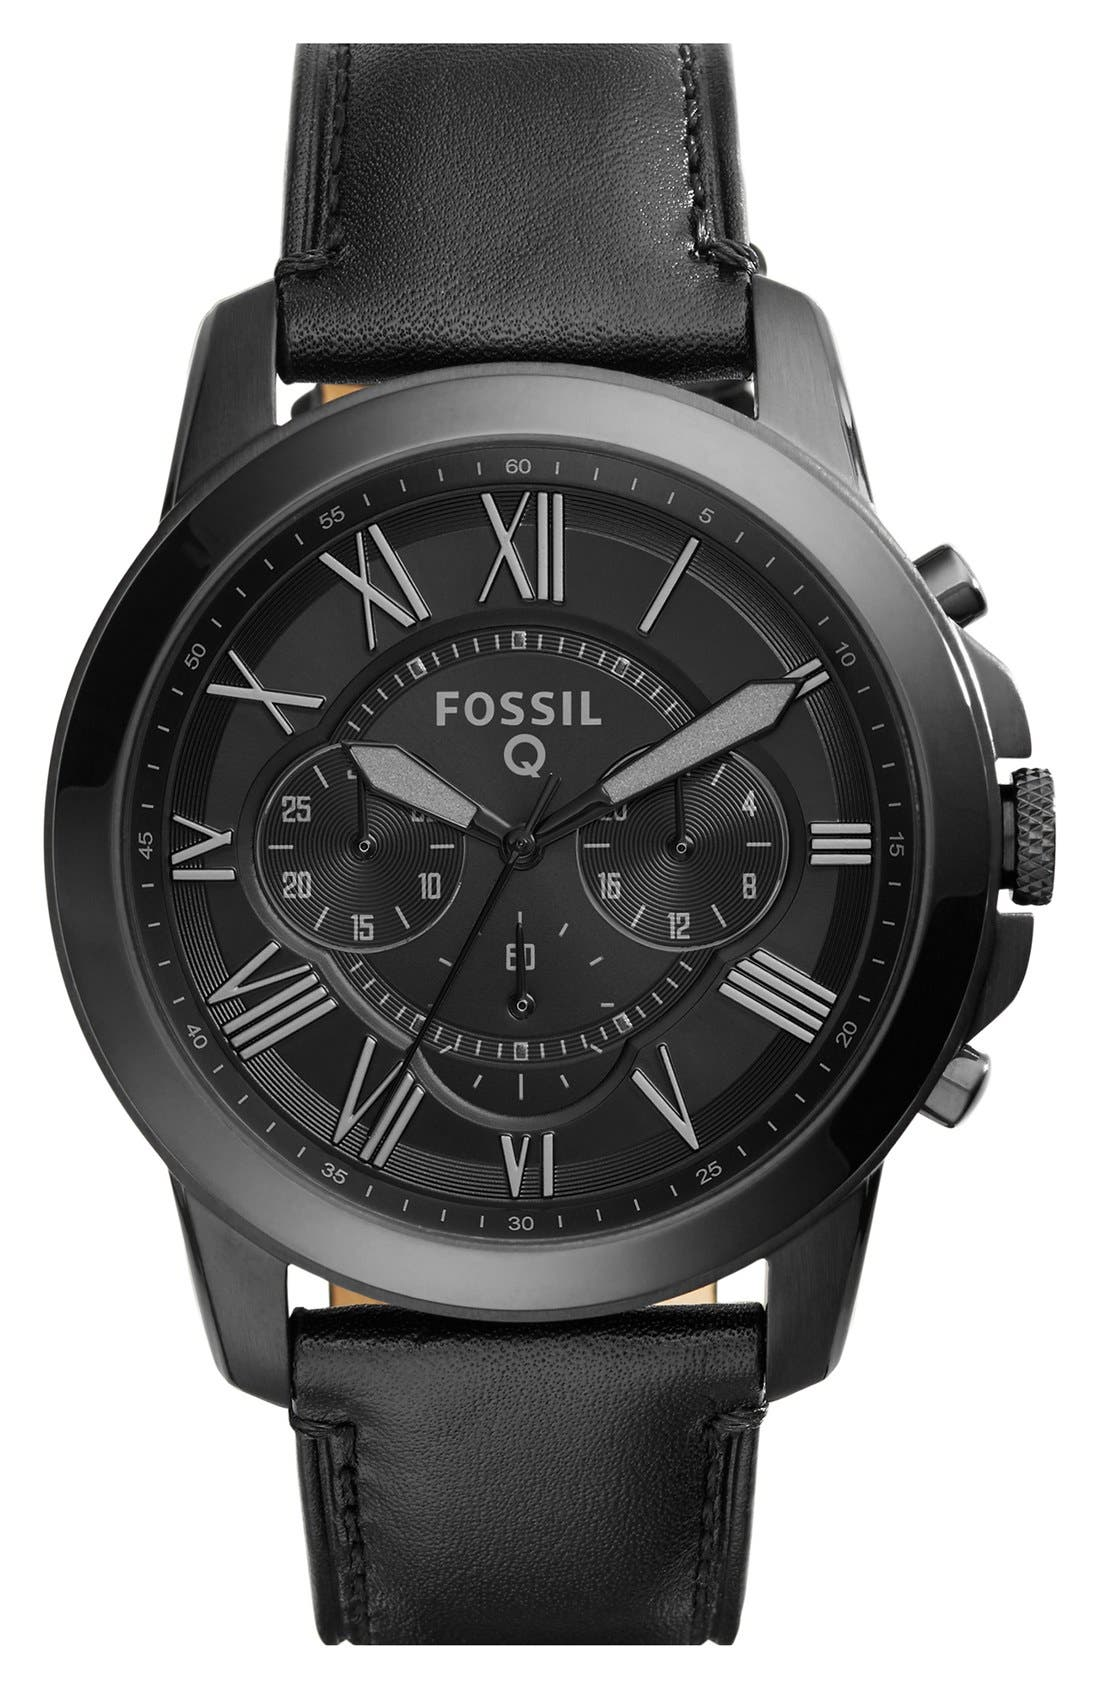 Fossil 'Fossil Q - Grant' Round Chronograph Leather Strap Smart Watch, 44mm,                         Main,                         color, 001